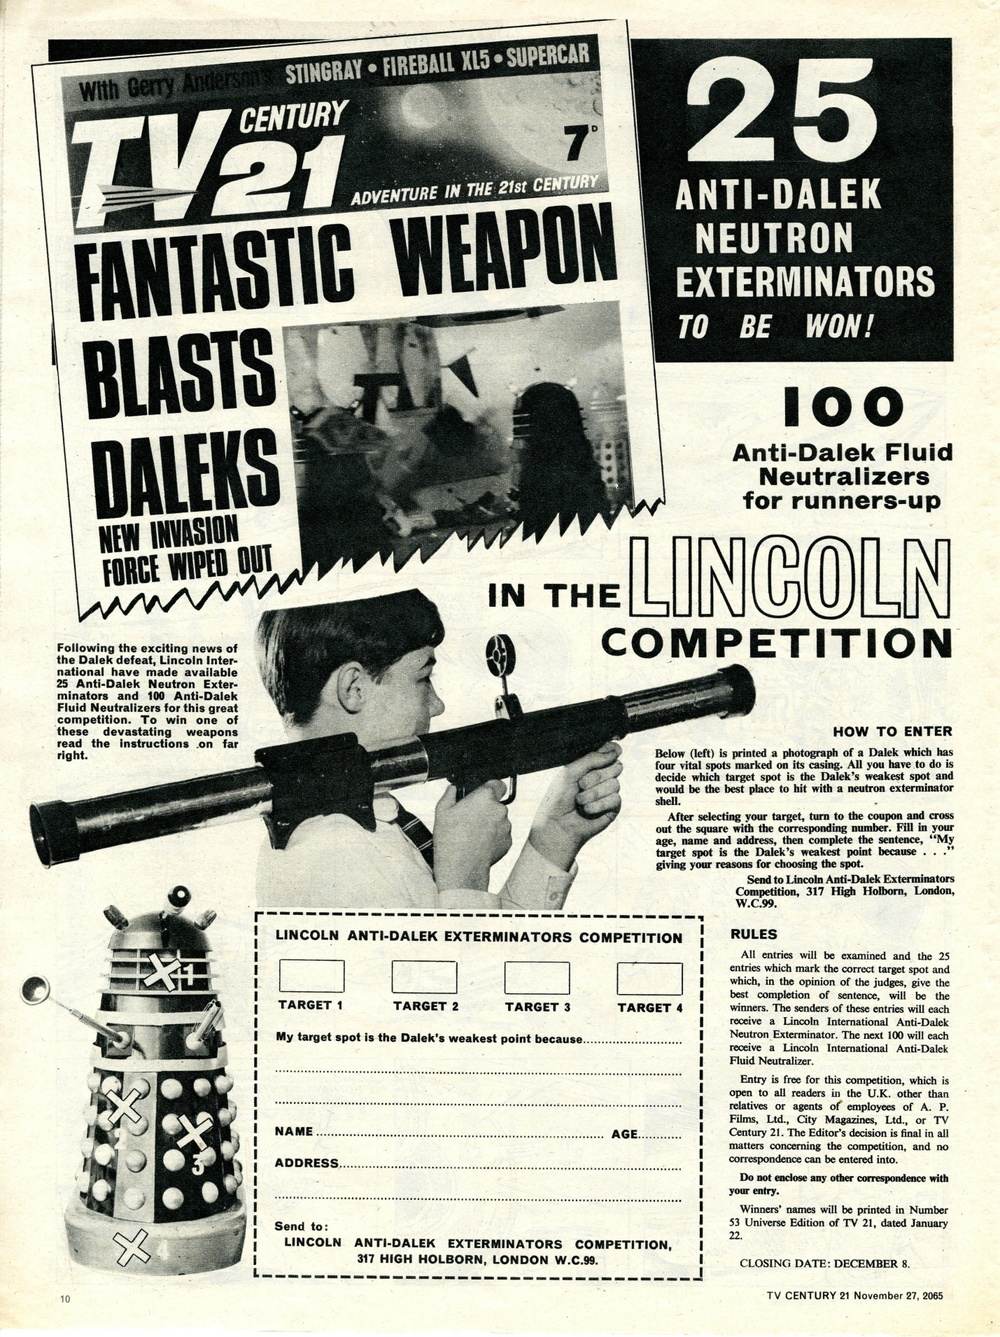 Competition to win the Lincoln International Ltd. Anti-Dalek Neutron Exterminator in TV Century 21 #43, 13 November 2065 (1965)